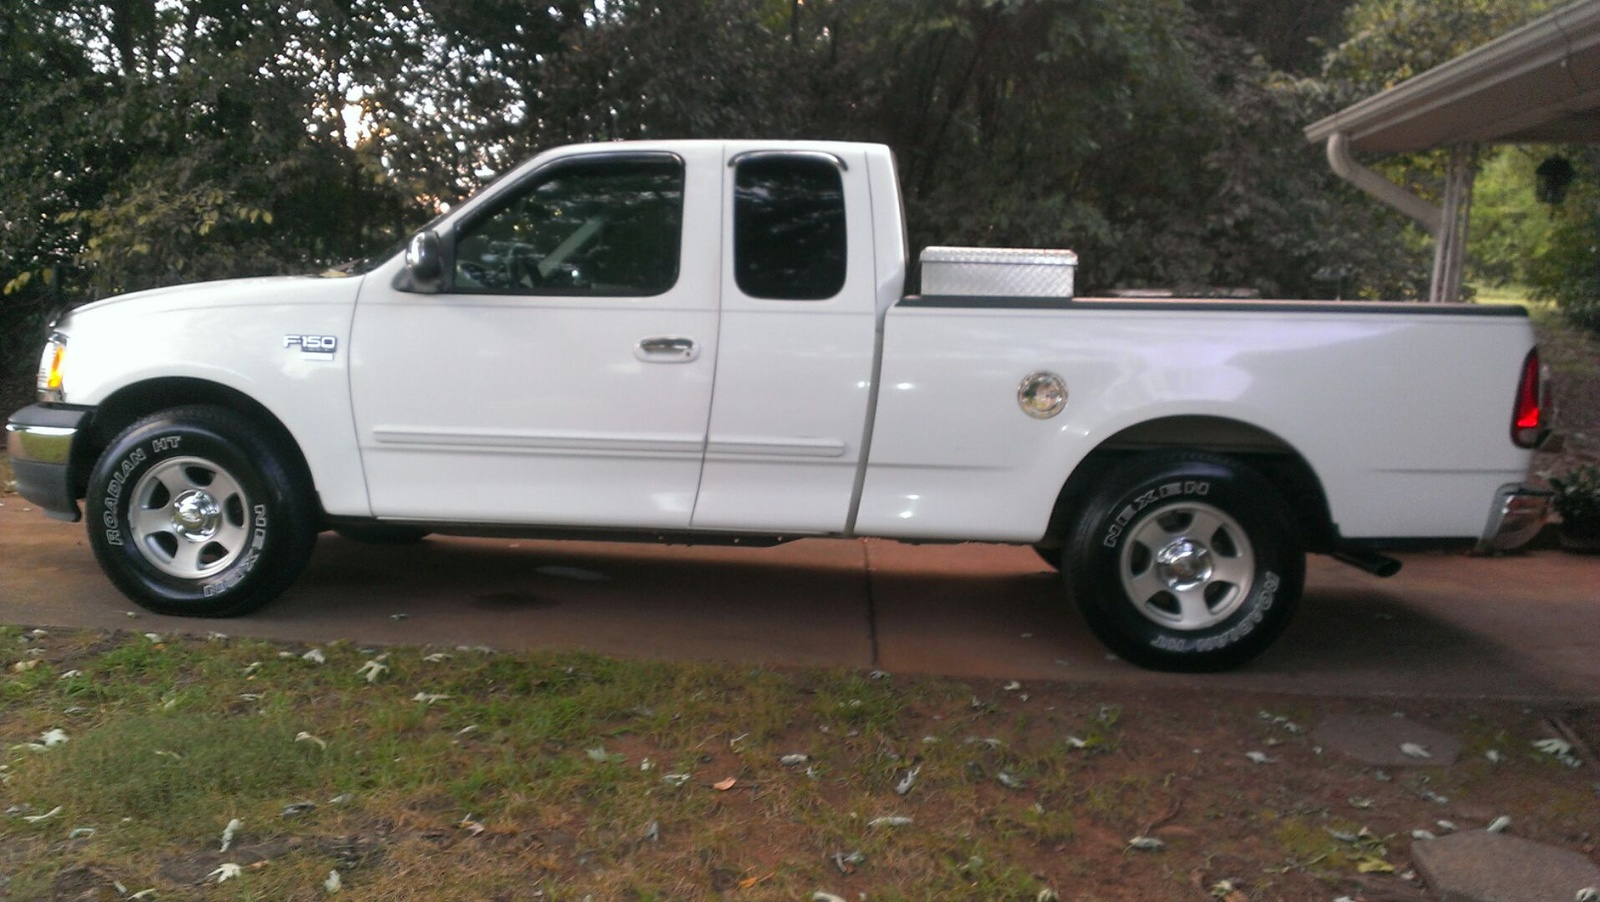 ford f 150 questions if your truck cranks but will not start, what